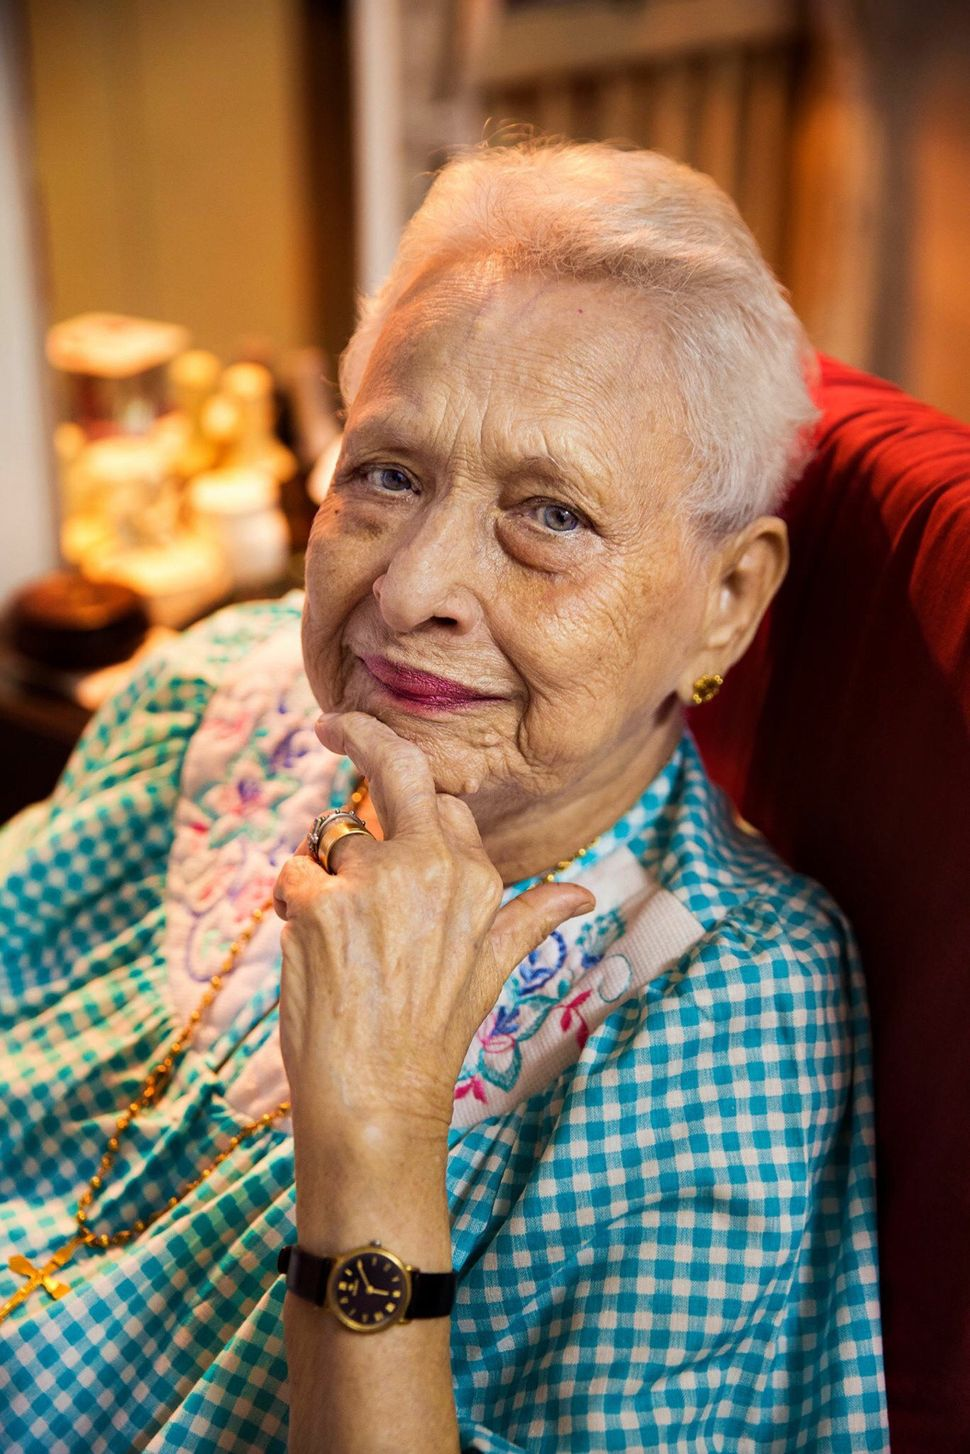 Next year she will turn 100 years old.  Imagine, a century of history seen through these beautiful eyes.